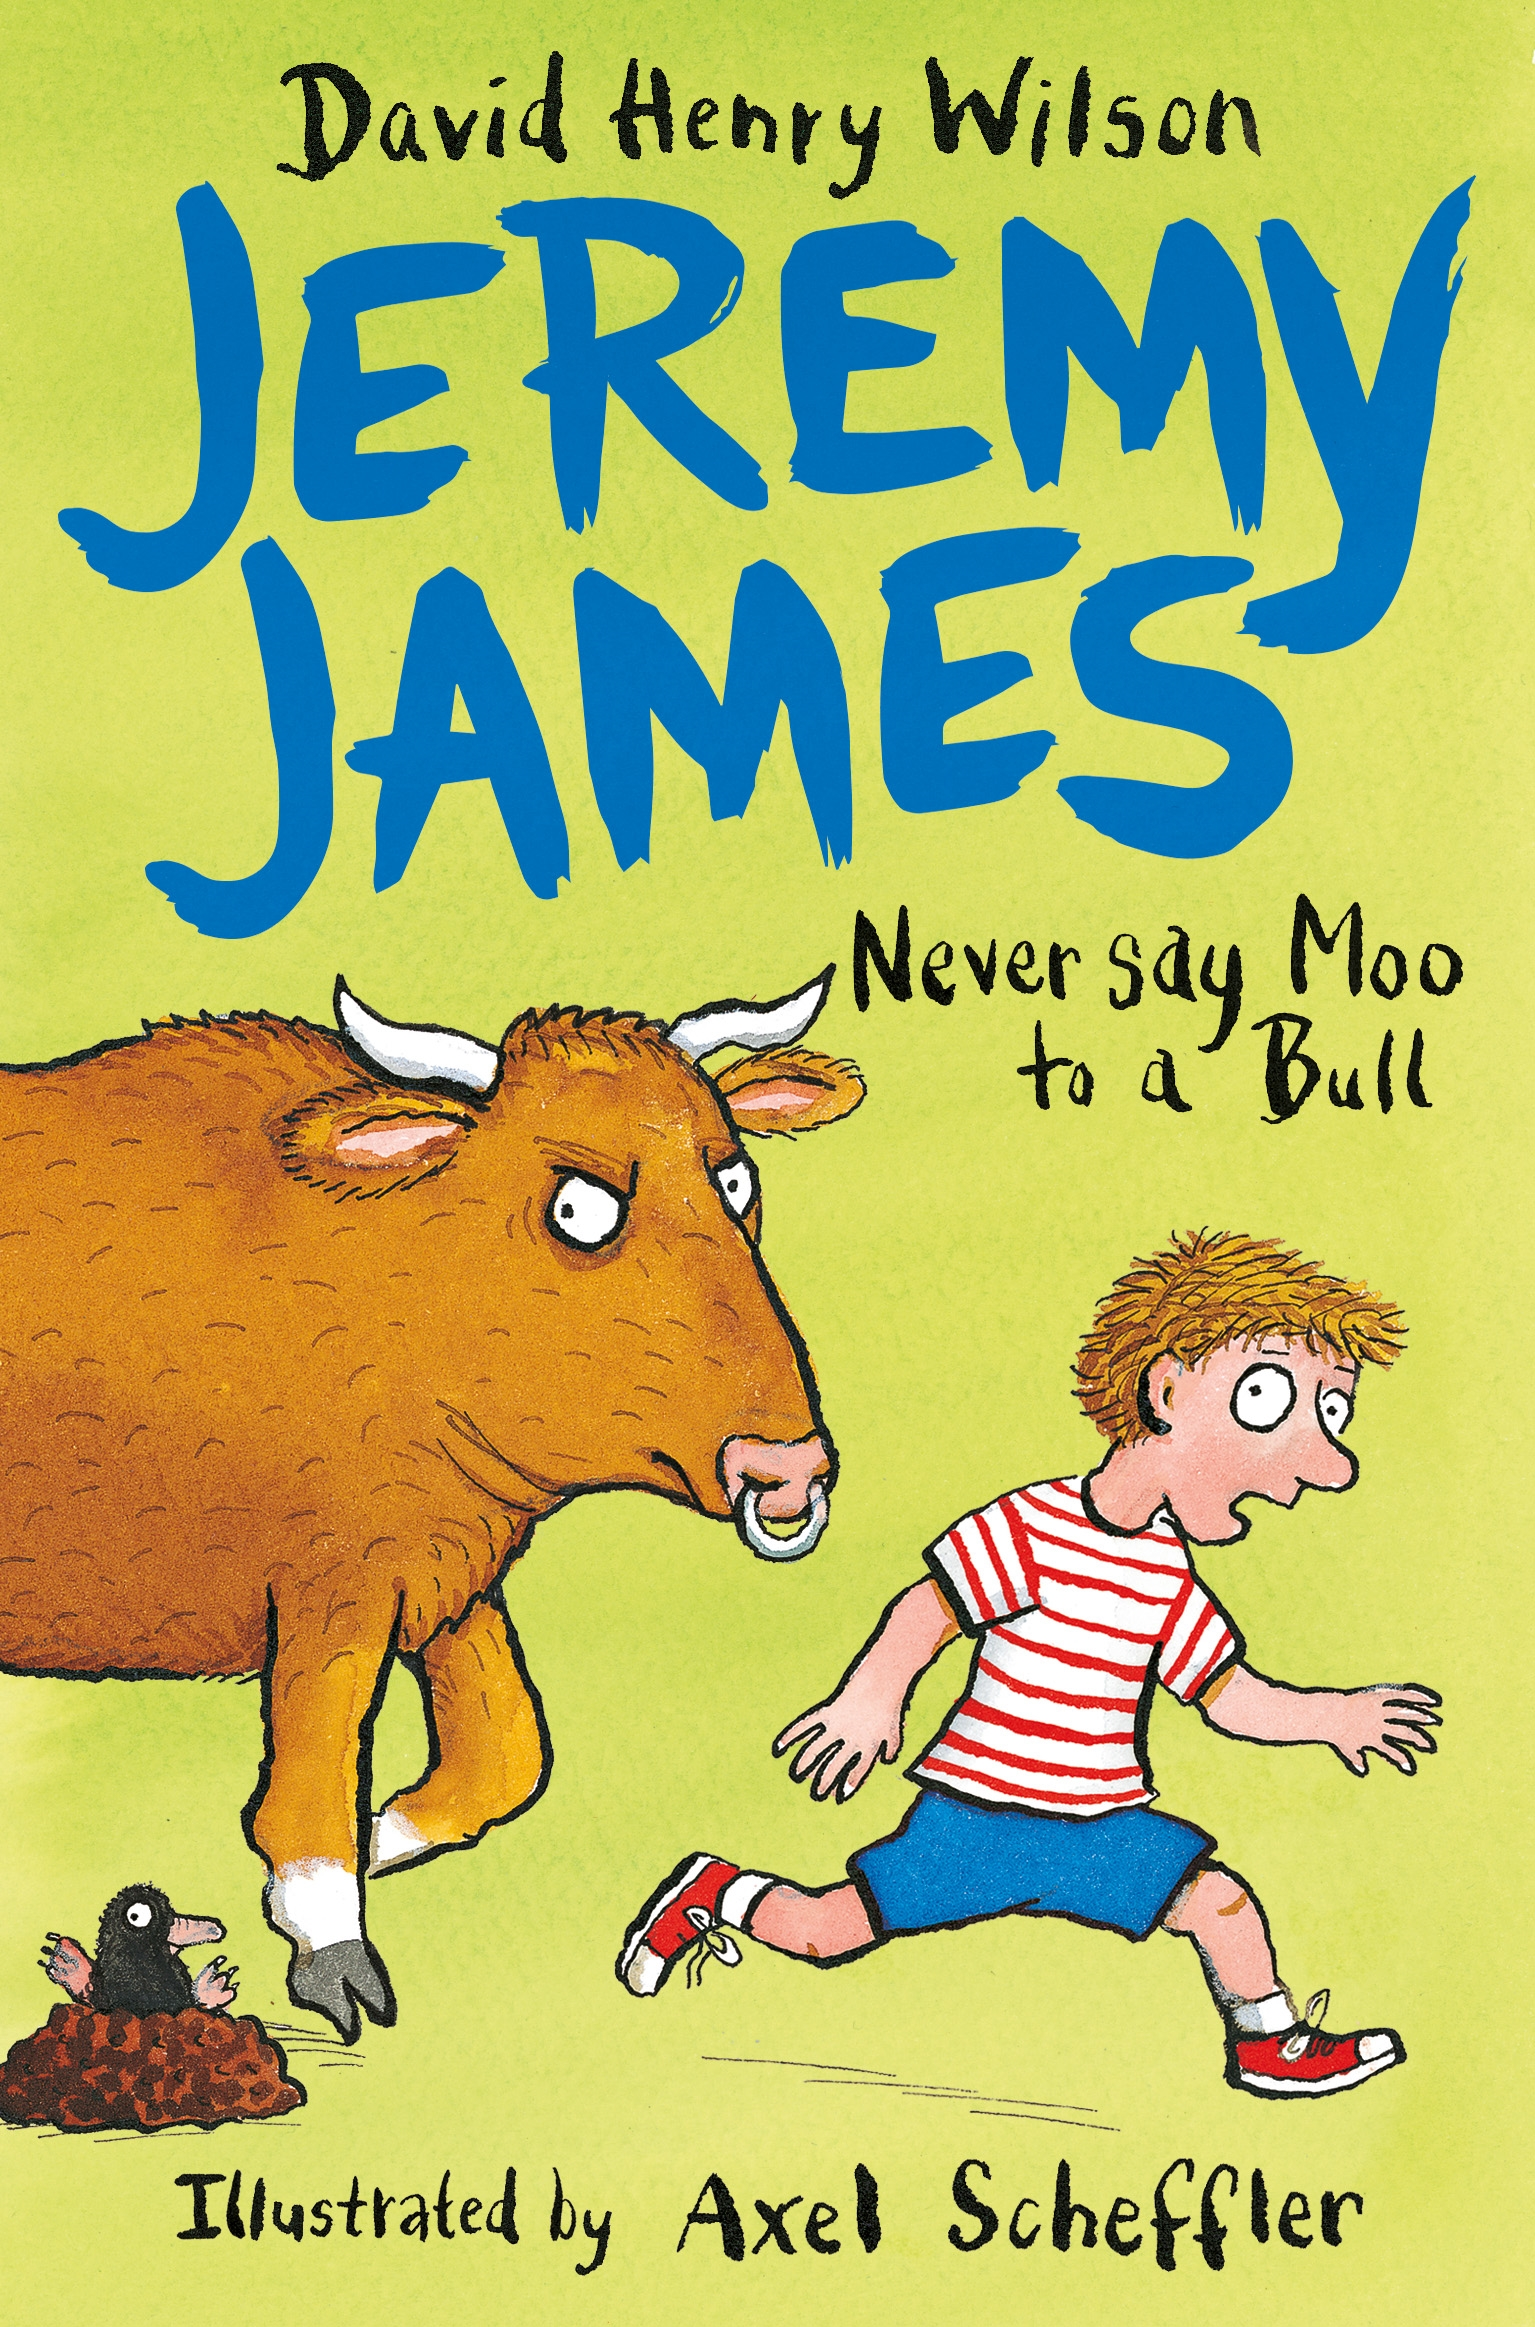 JEREMY JAMES: NEVER SAY MOO TO A BULL